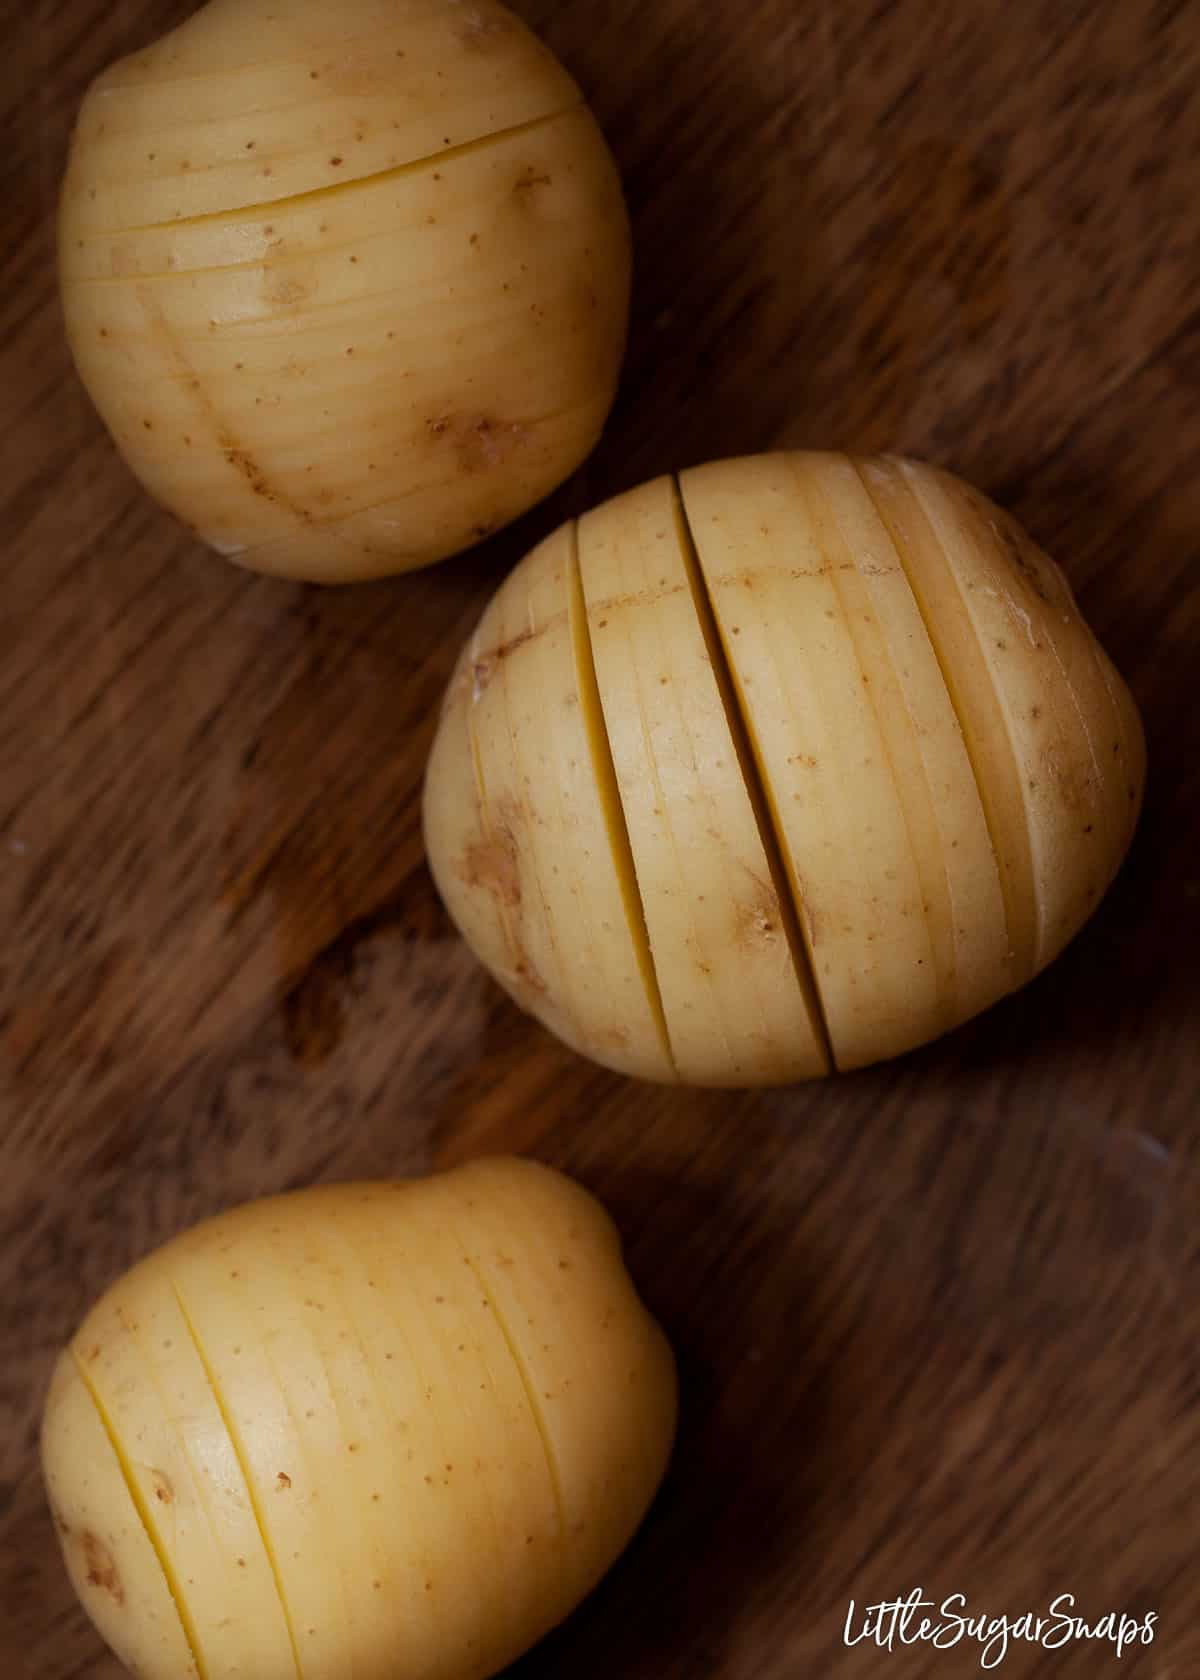 Process shot - new potatoes with vertical slits cut into them